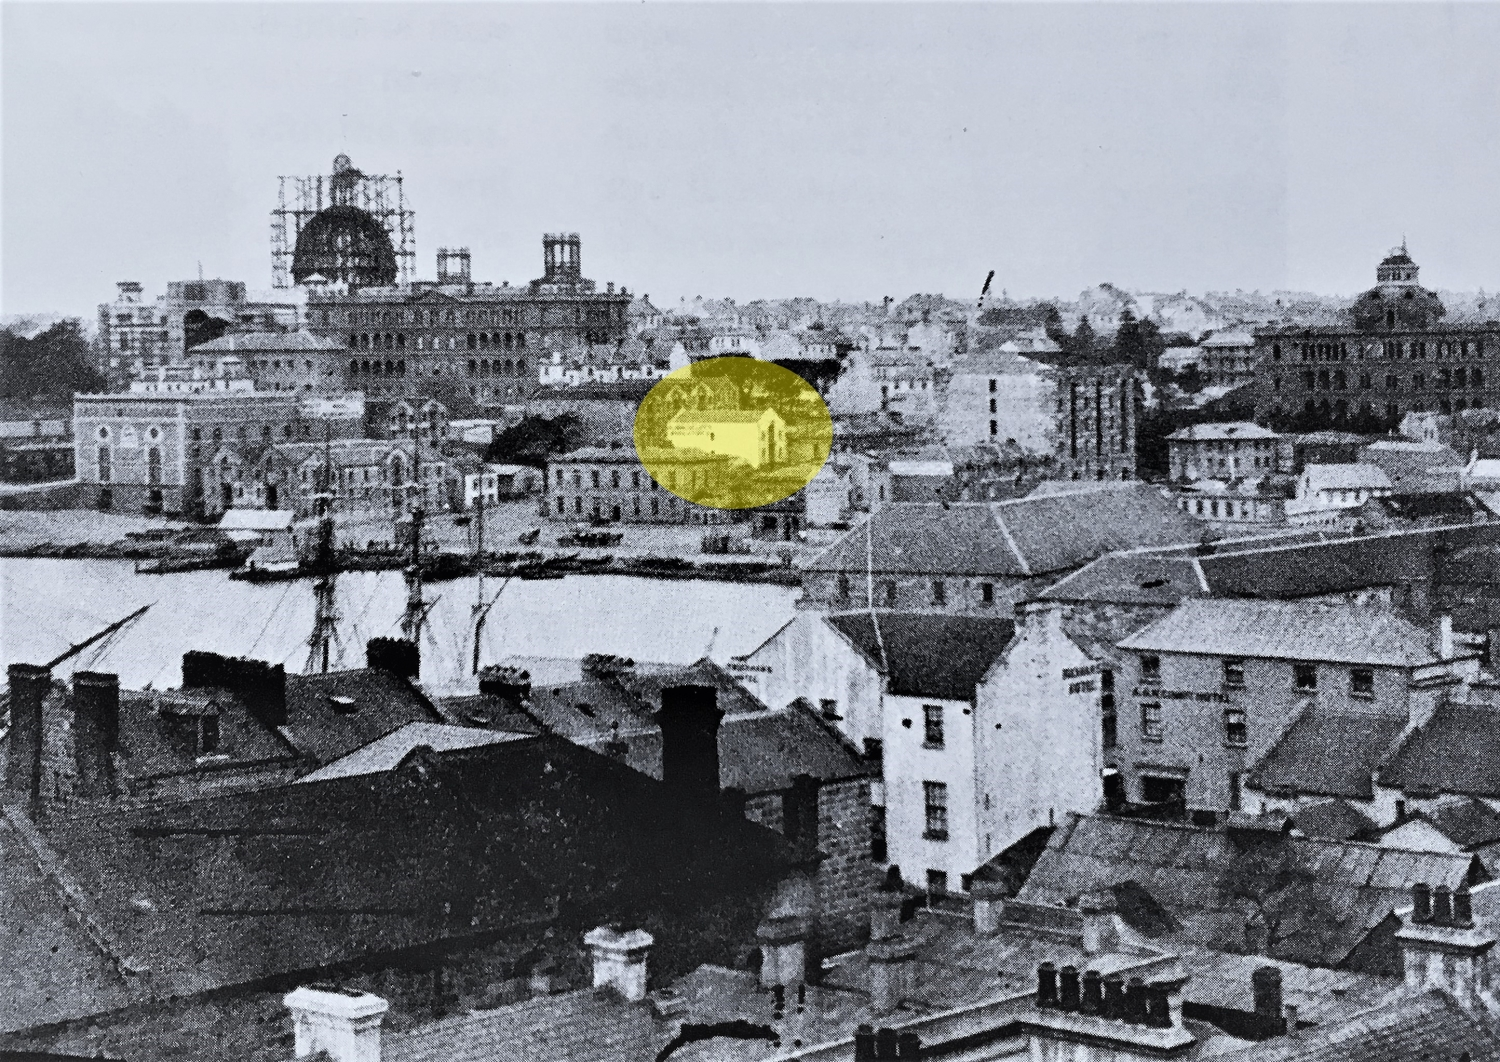 Black and white view of cityscape with yellow highlight on woolstore building in centre of image.